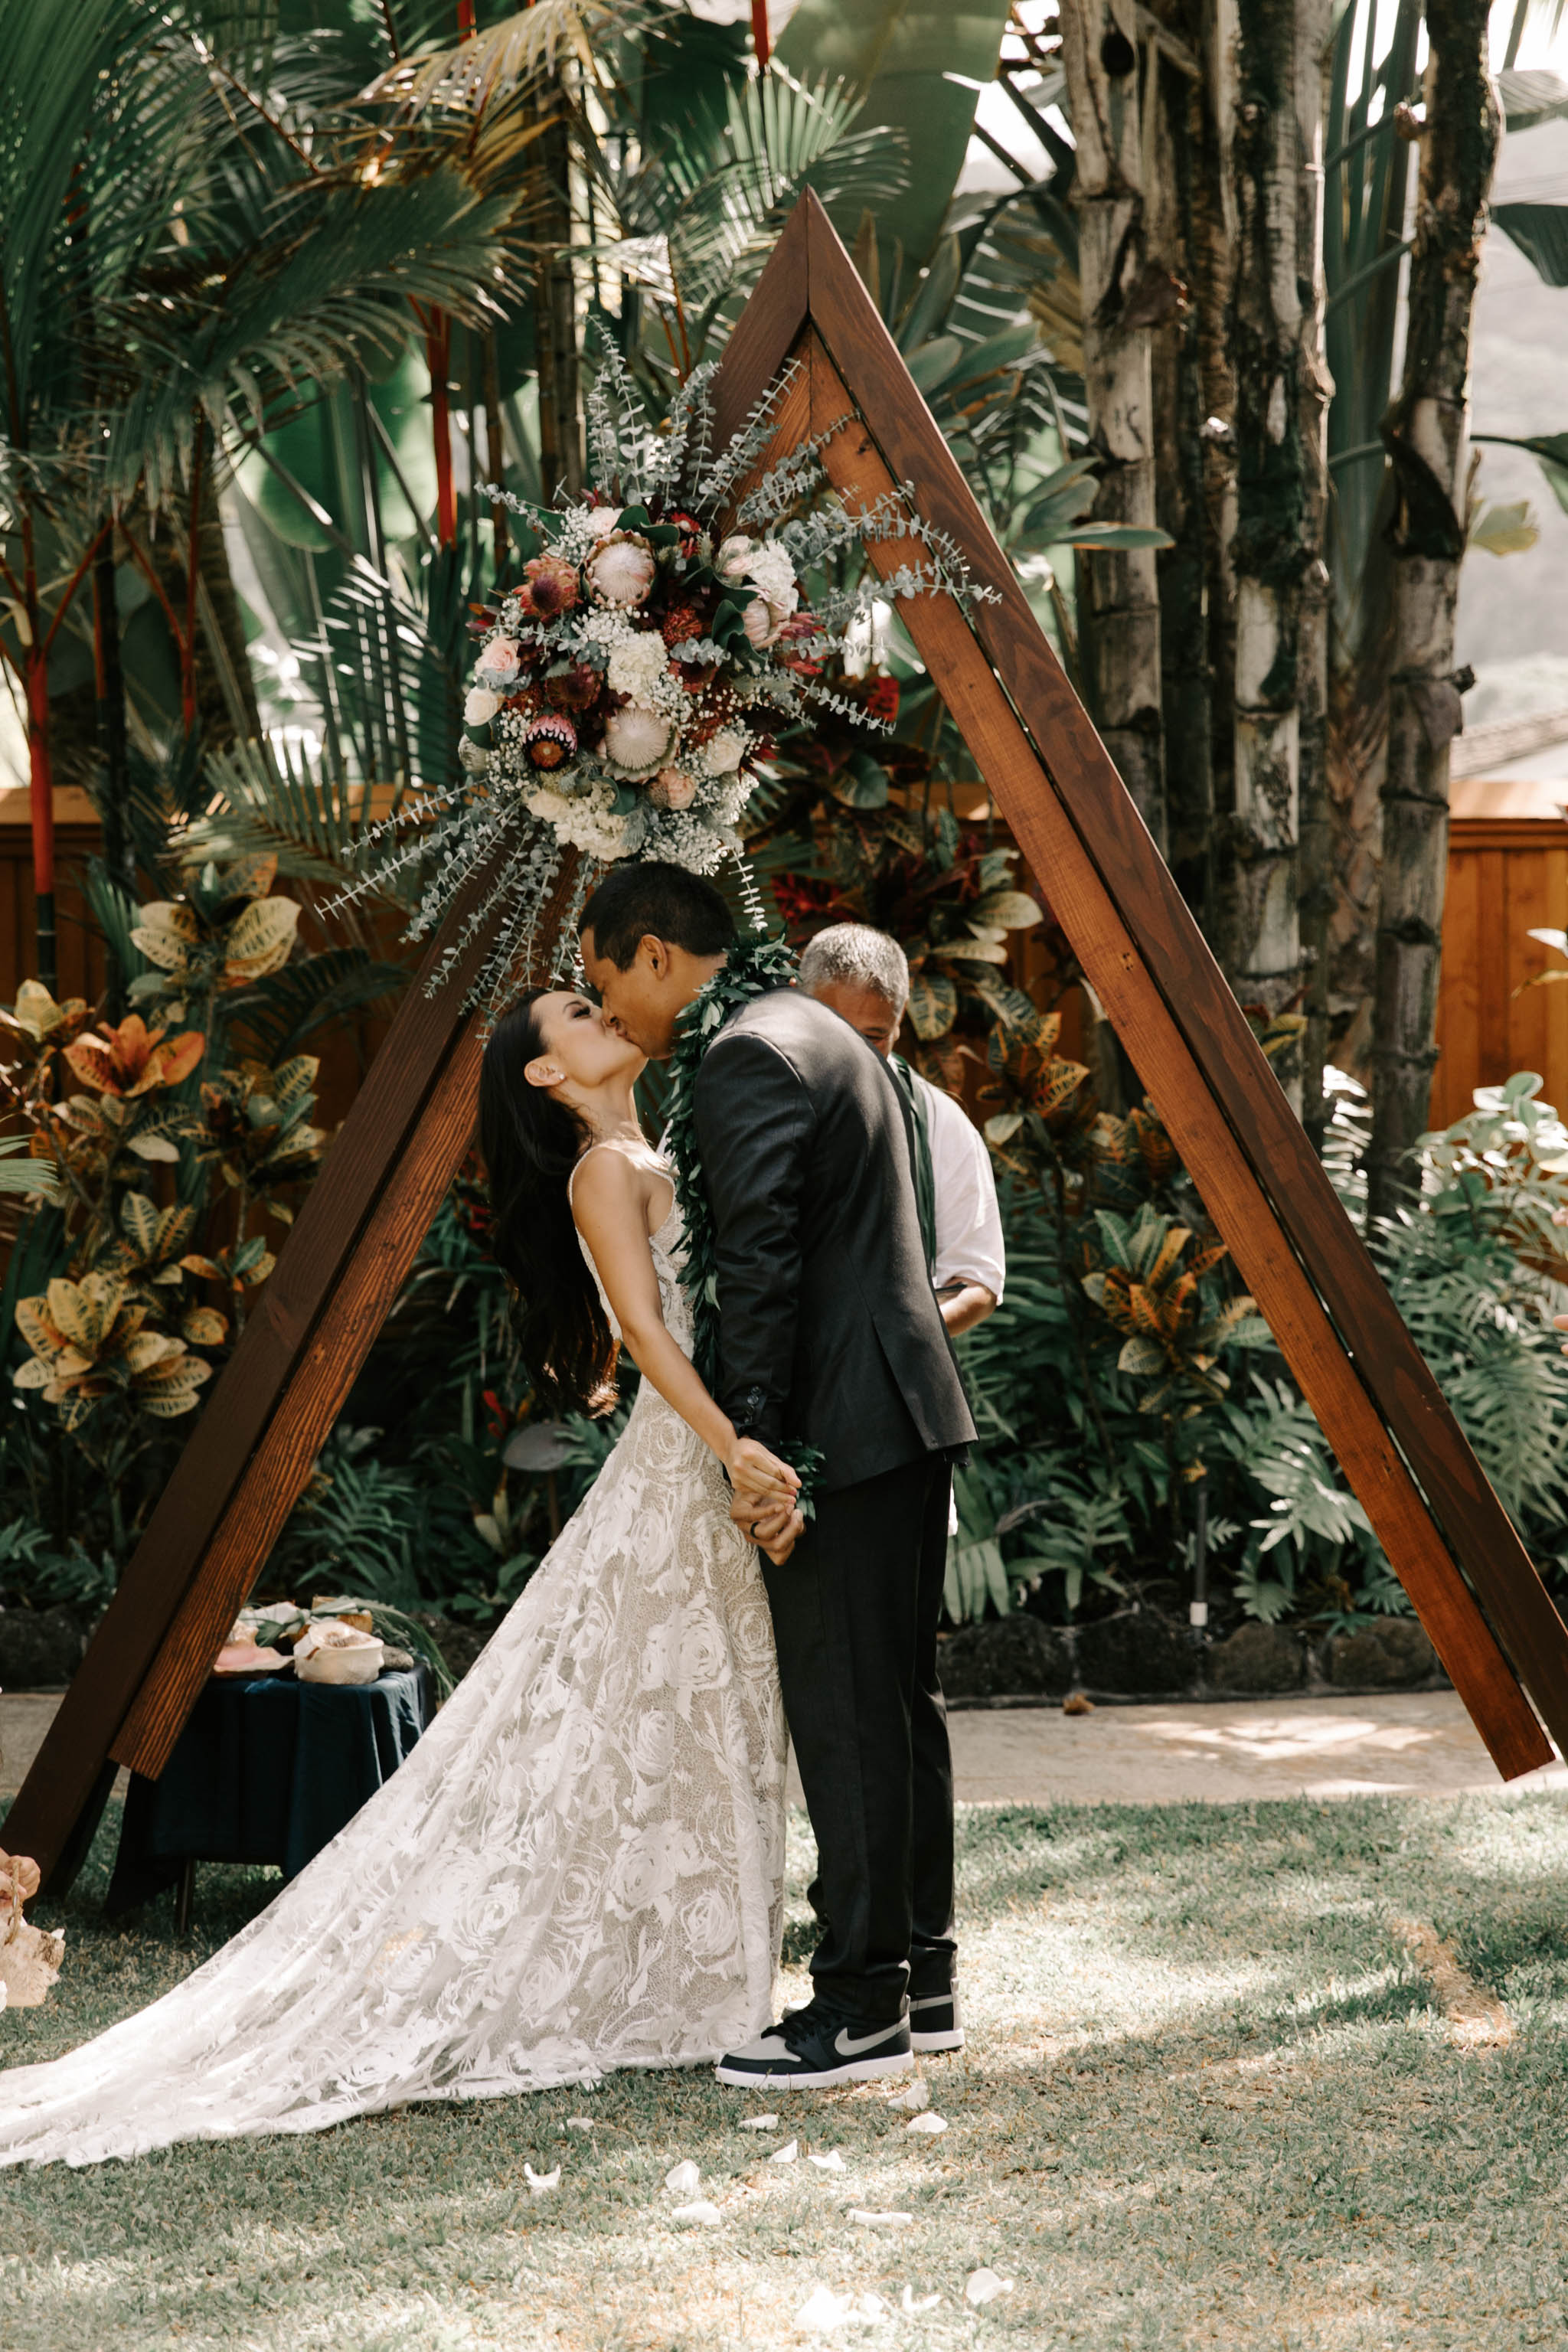 Triangle Wedding Ceremony Arch - Hale Koa Phineas Estate Wedding By Hawaii Wedding Photographer Desiree Leilani